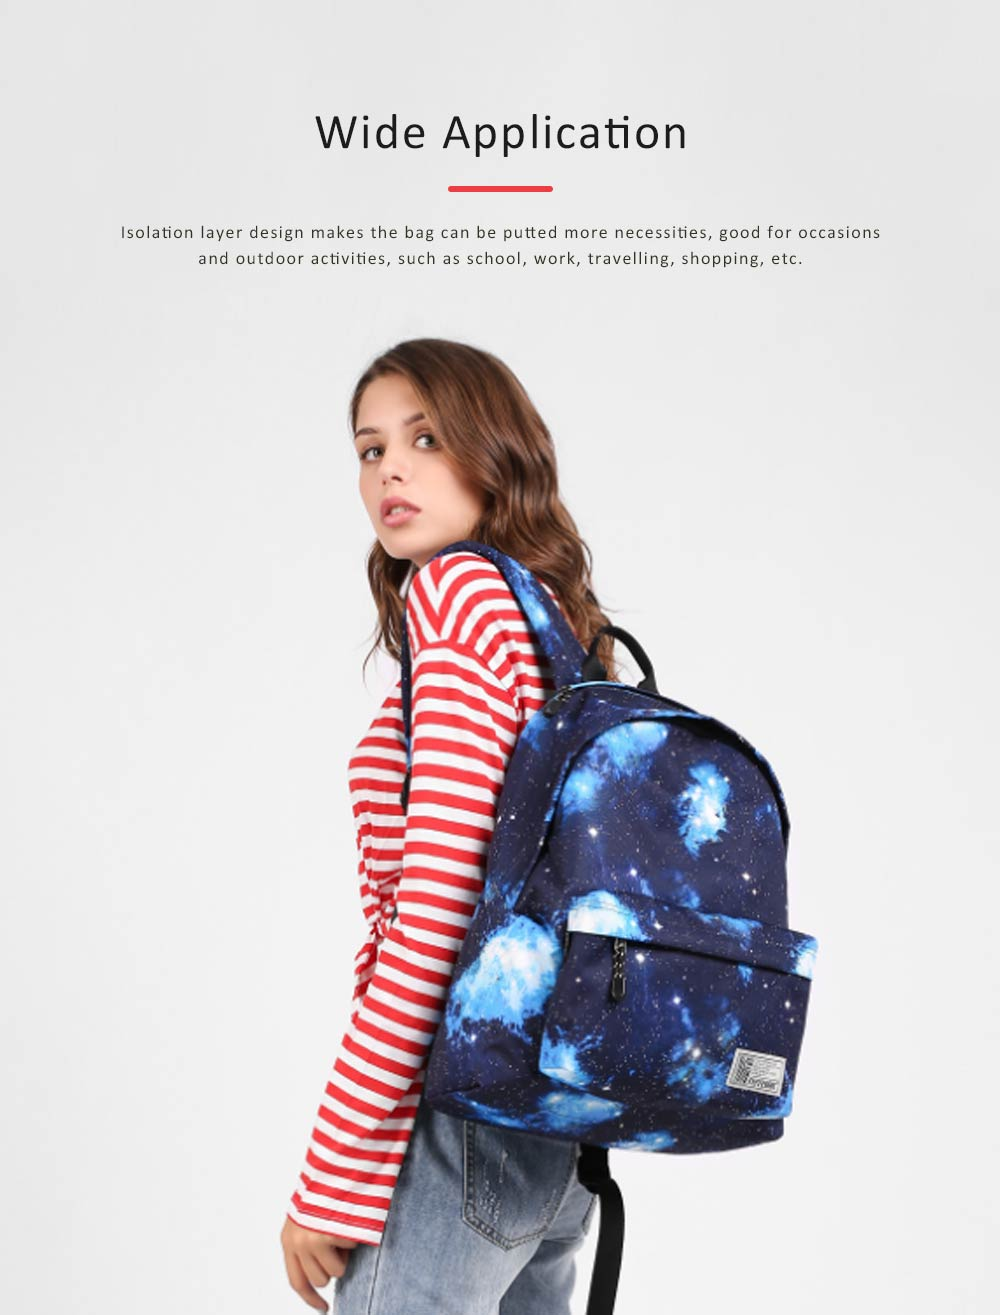 Starry Sky Backpack with Superior SBS Zipper, Fashionable Laptop Backpack for Traveling, Outdoors Shopping 2